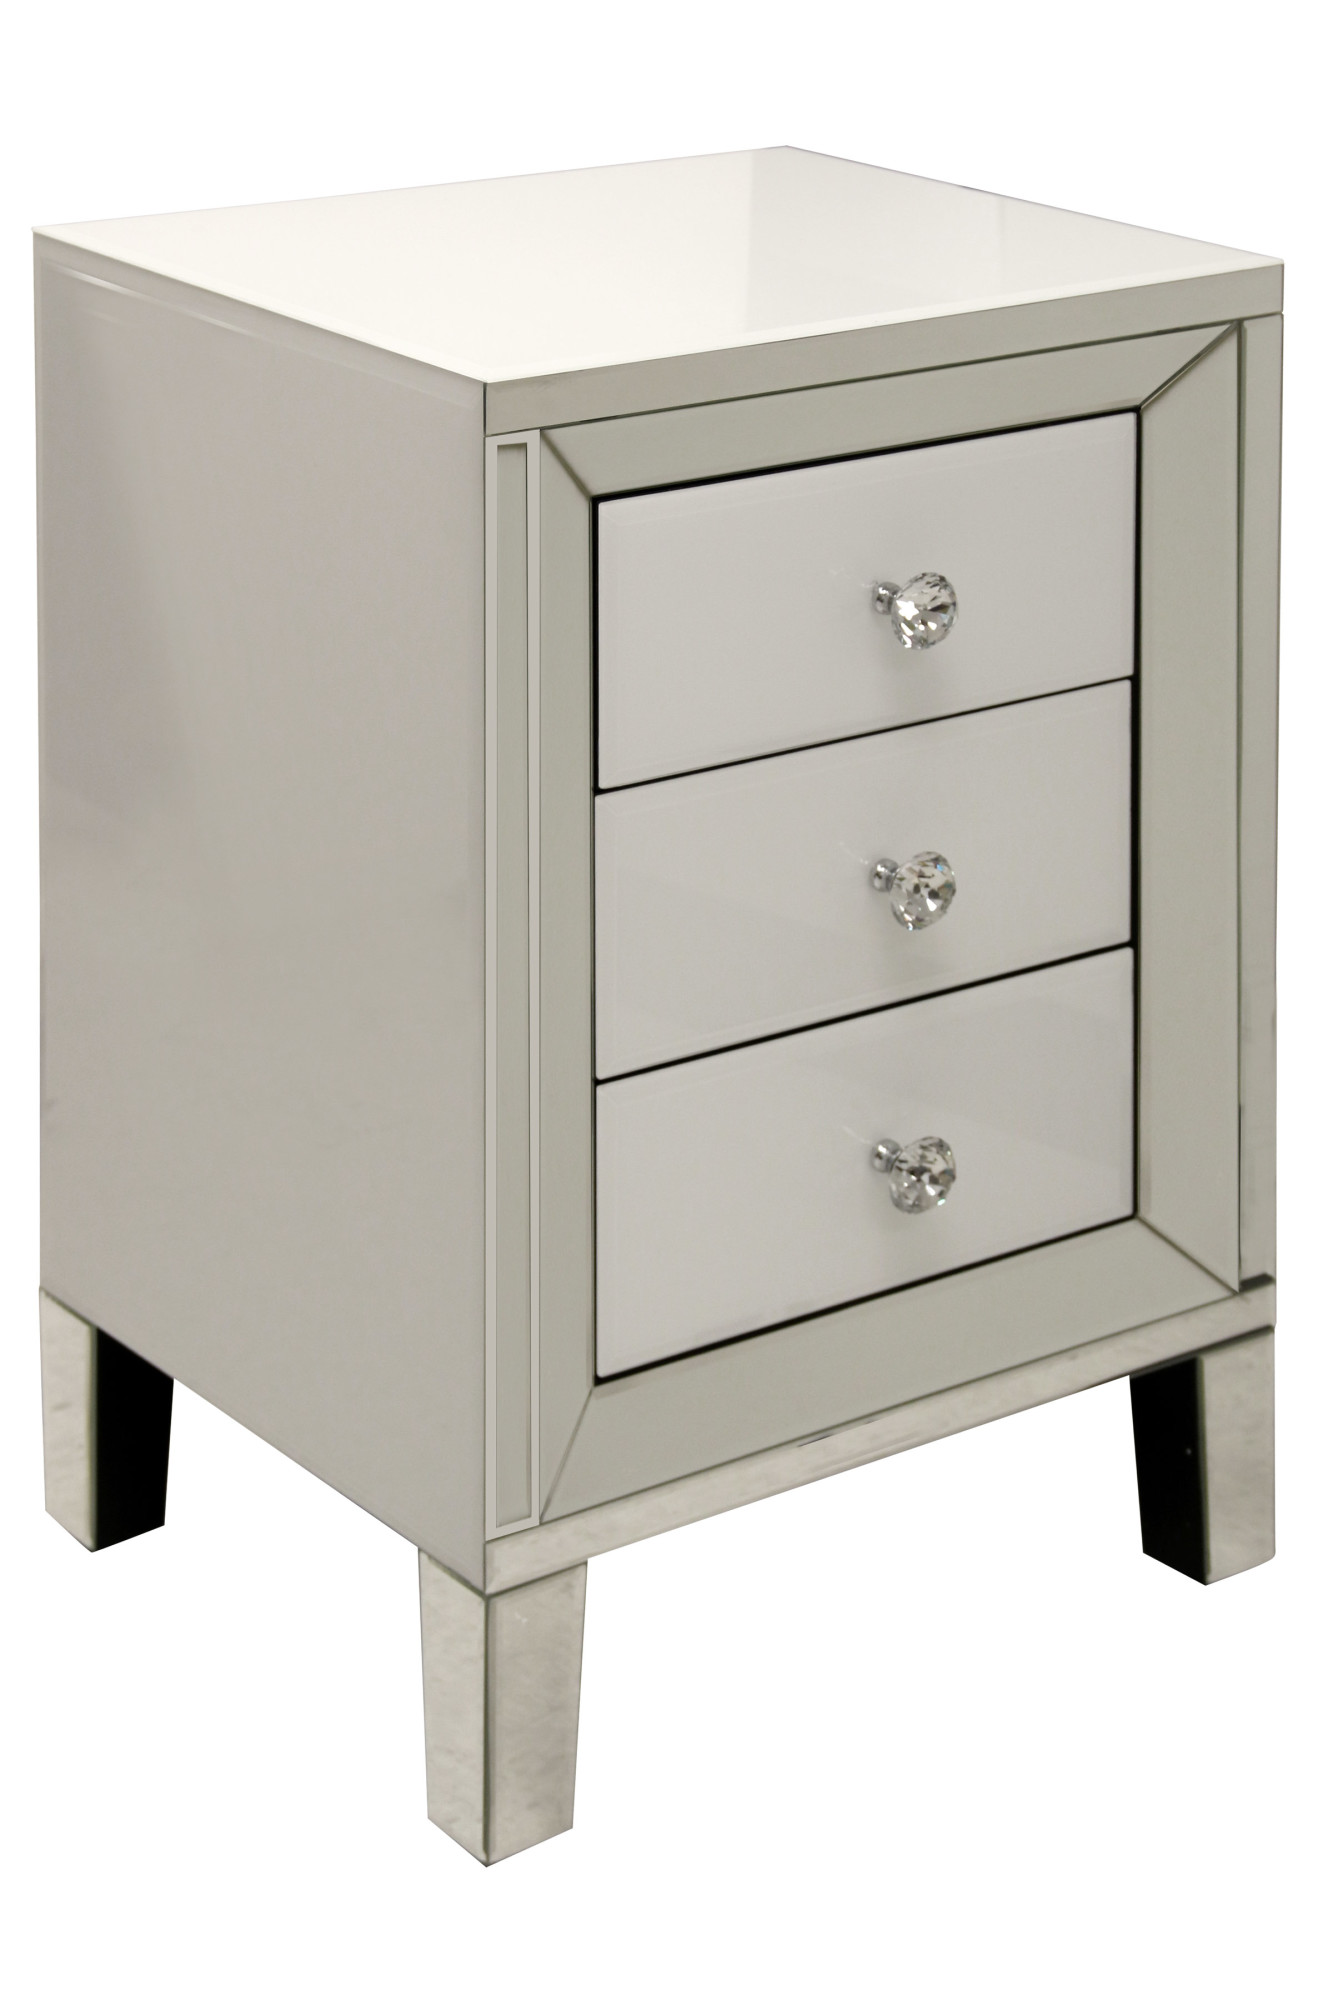 Details About Stylecraft Sc Sf24442 20 W Three Drawer Glass And Wood Nightstand White